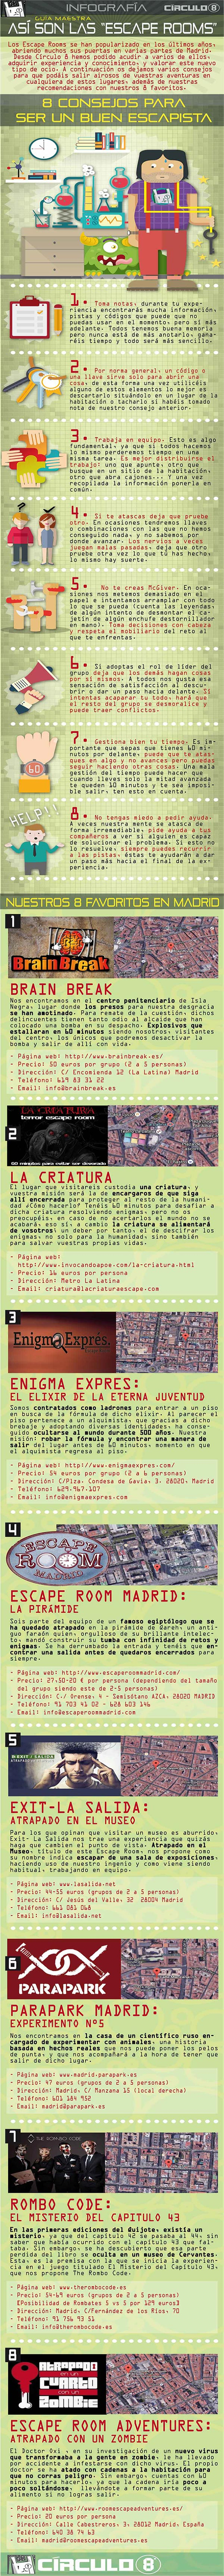 escape-rooms-infografia